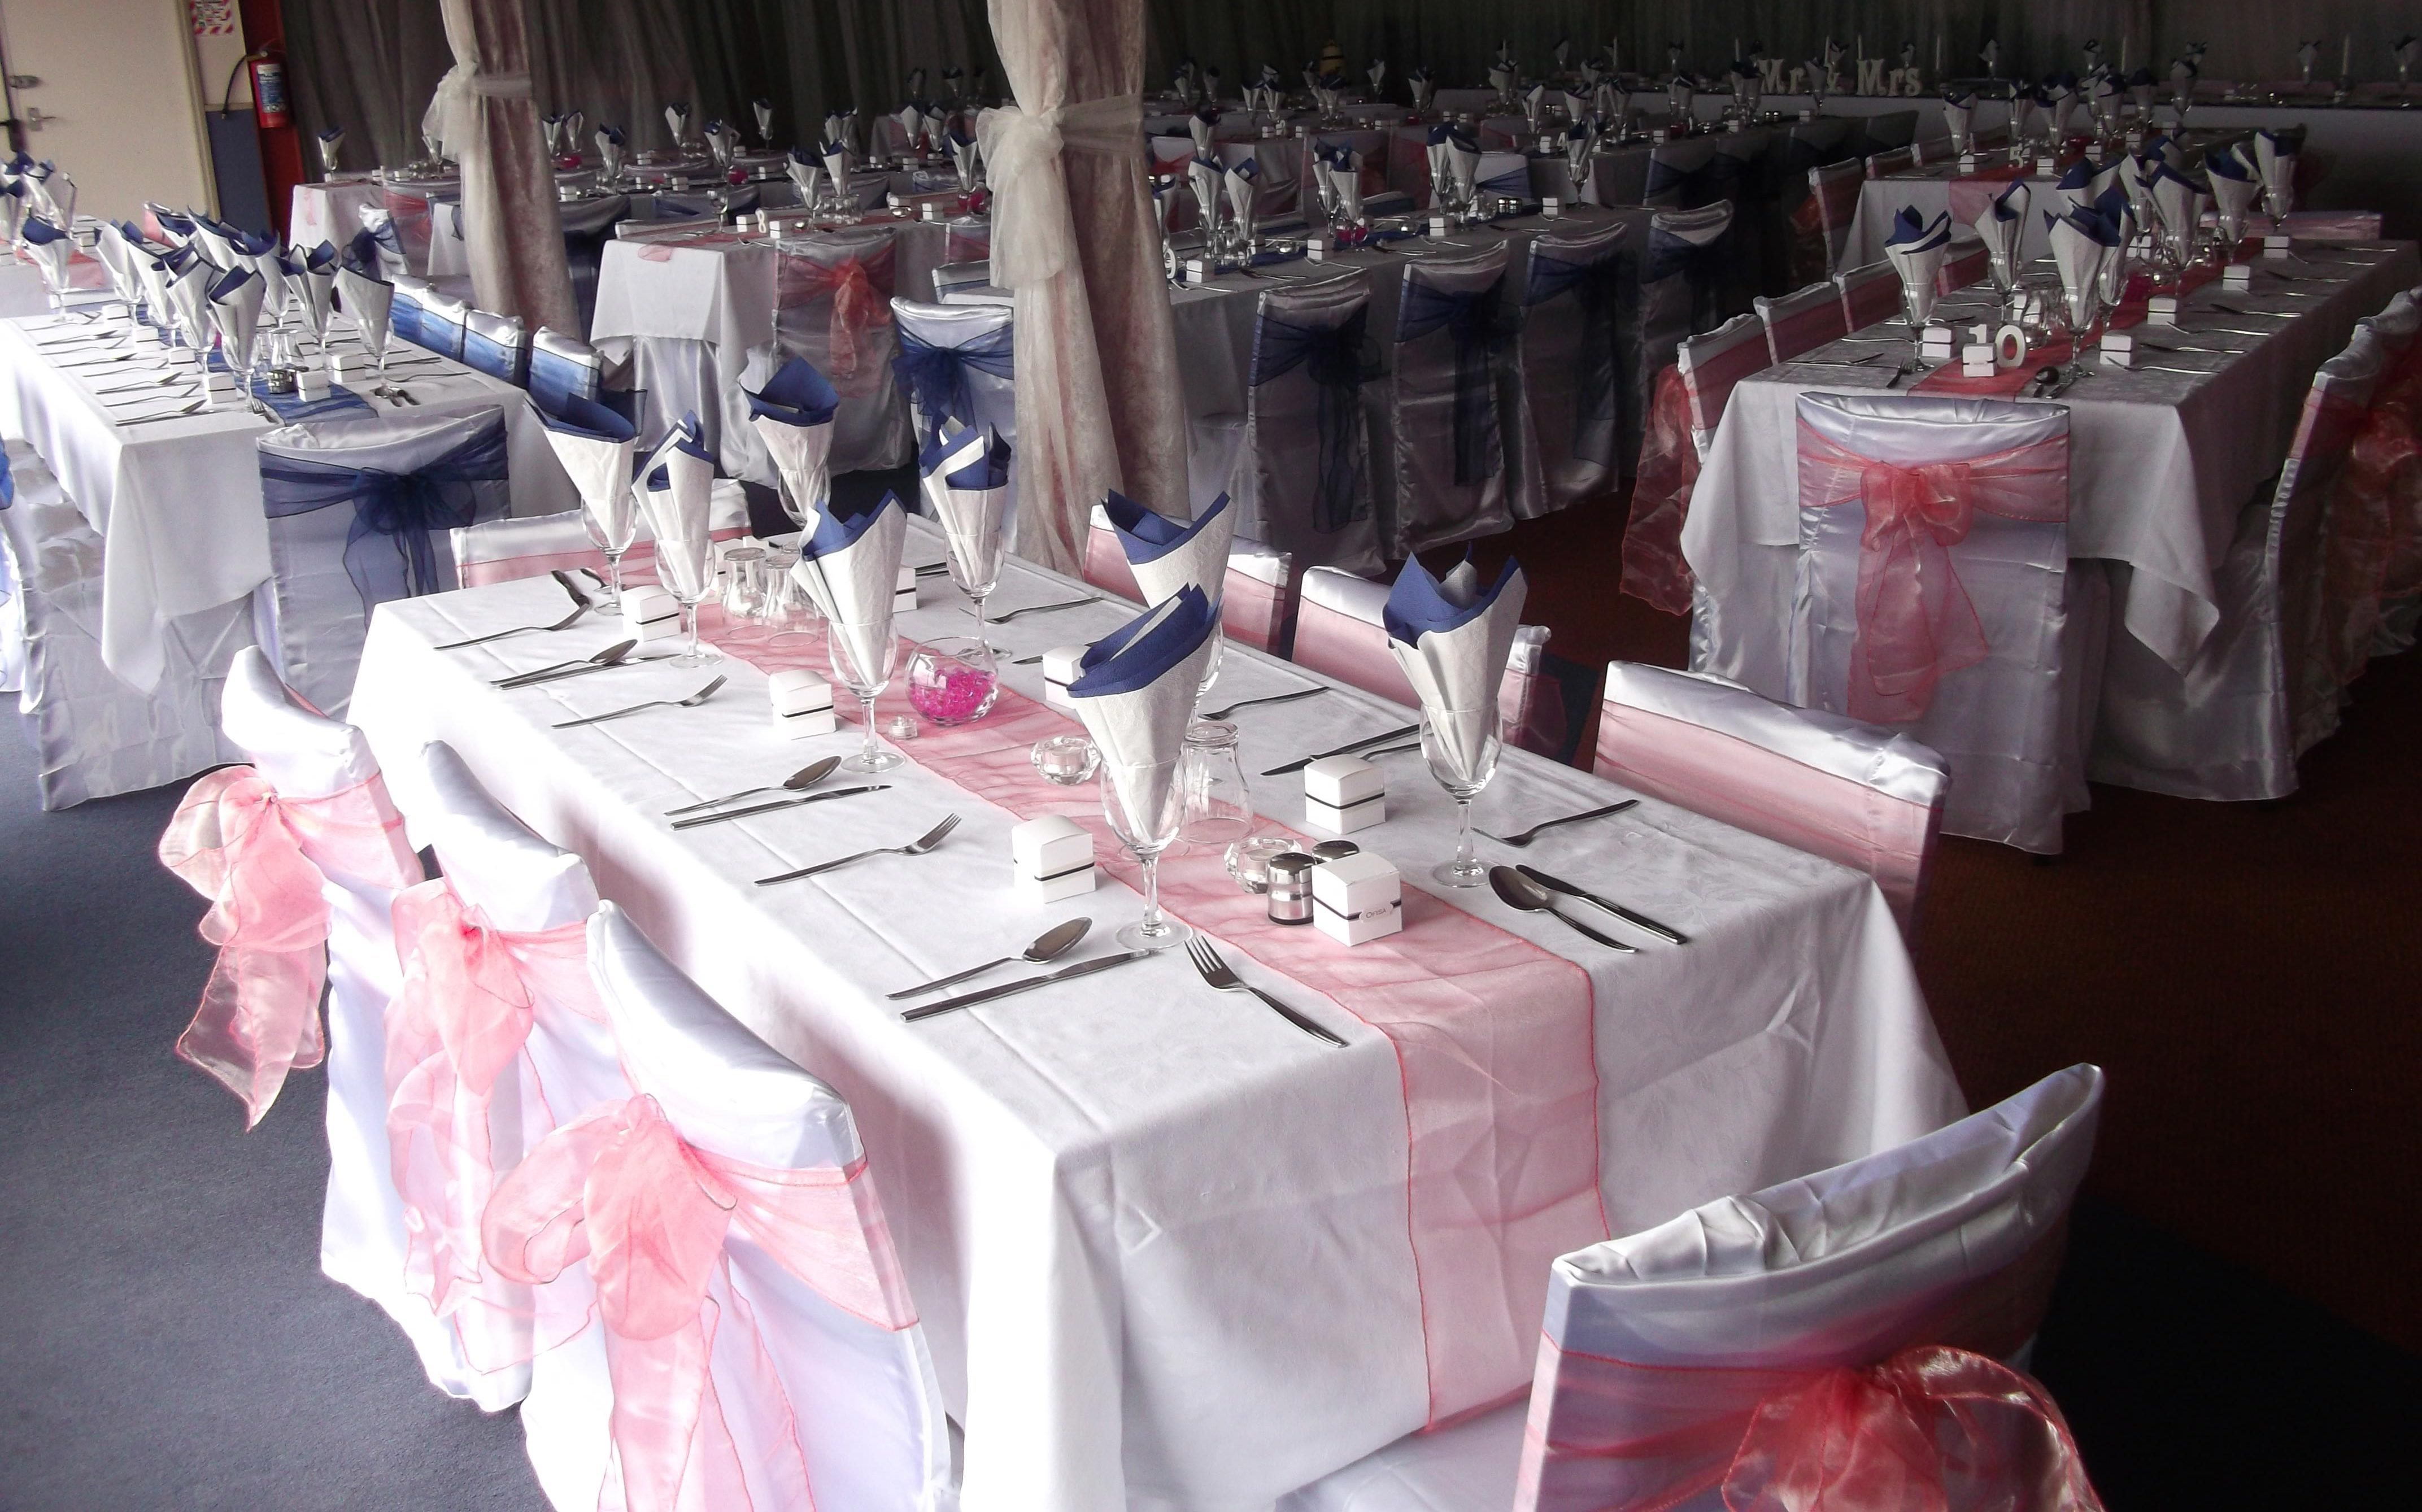 Catering service by South Canterbury